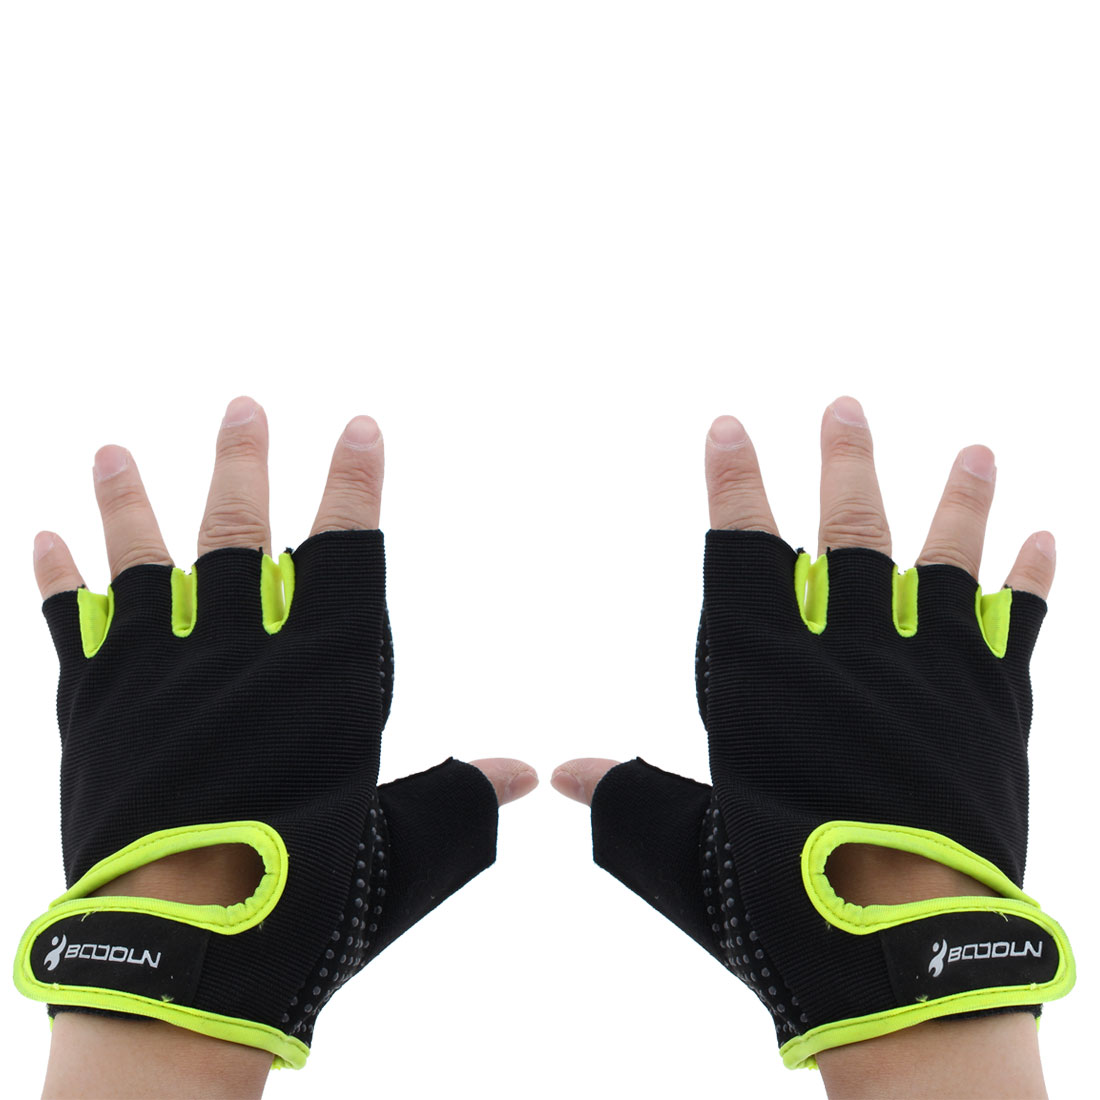 BOODUN Authorized Exercise Weight Biking Lifting Training Microfiber Non-slip Fitness Half Finger Gloves Fluorescent Green S